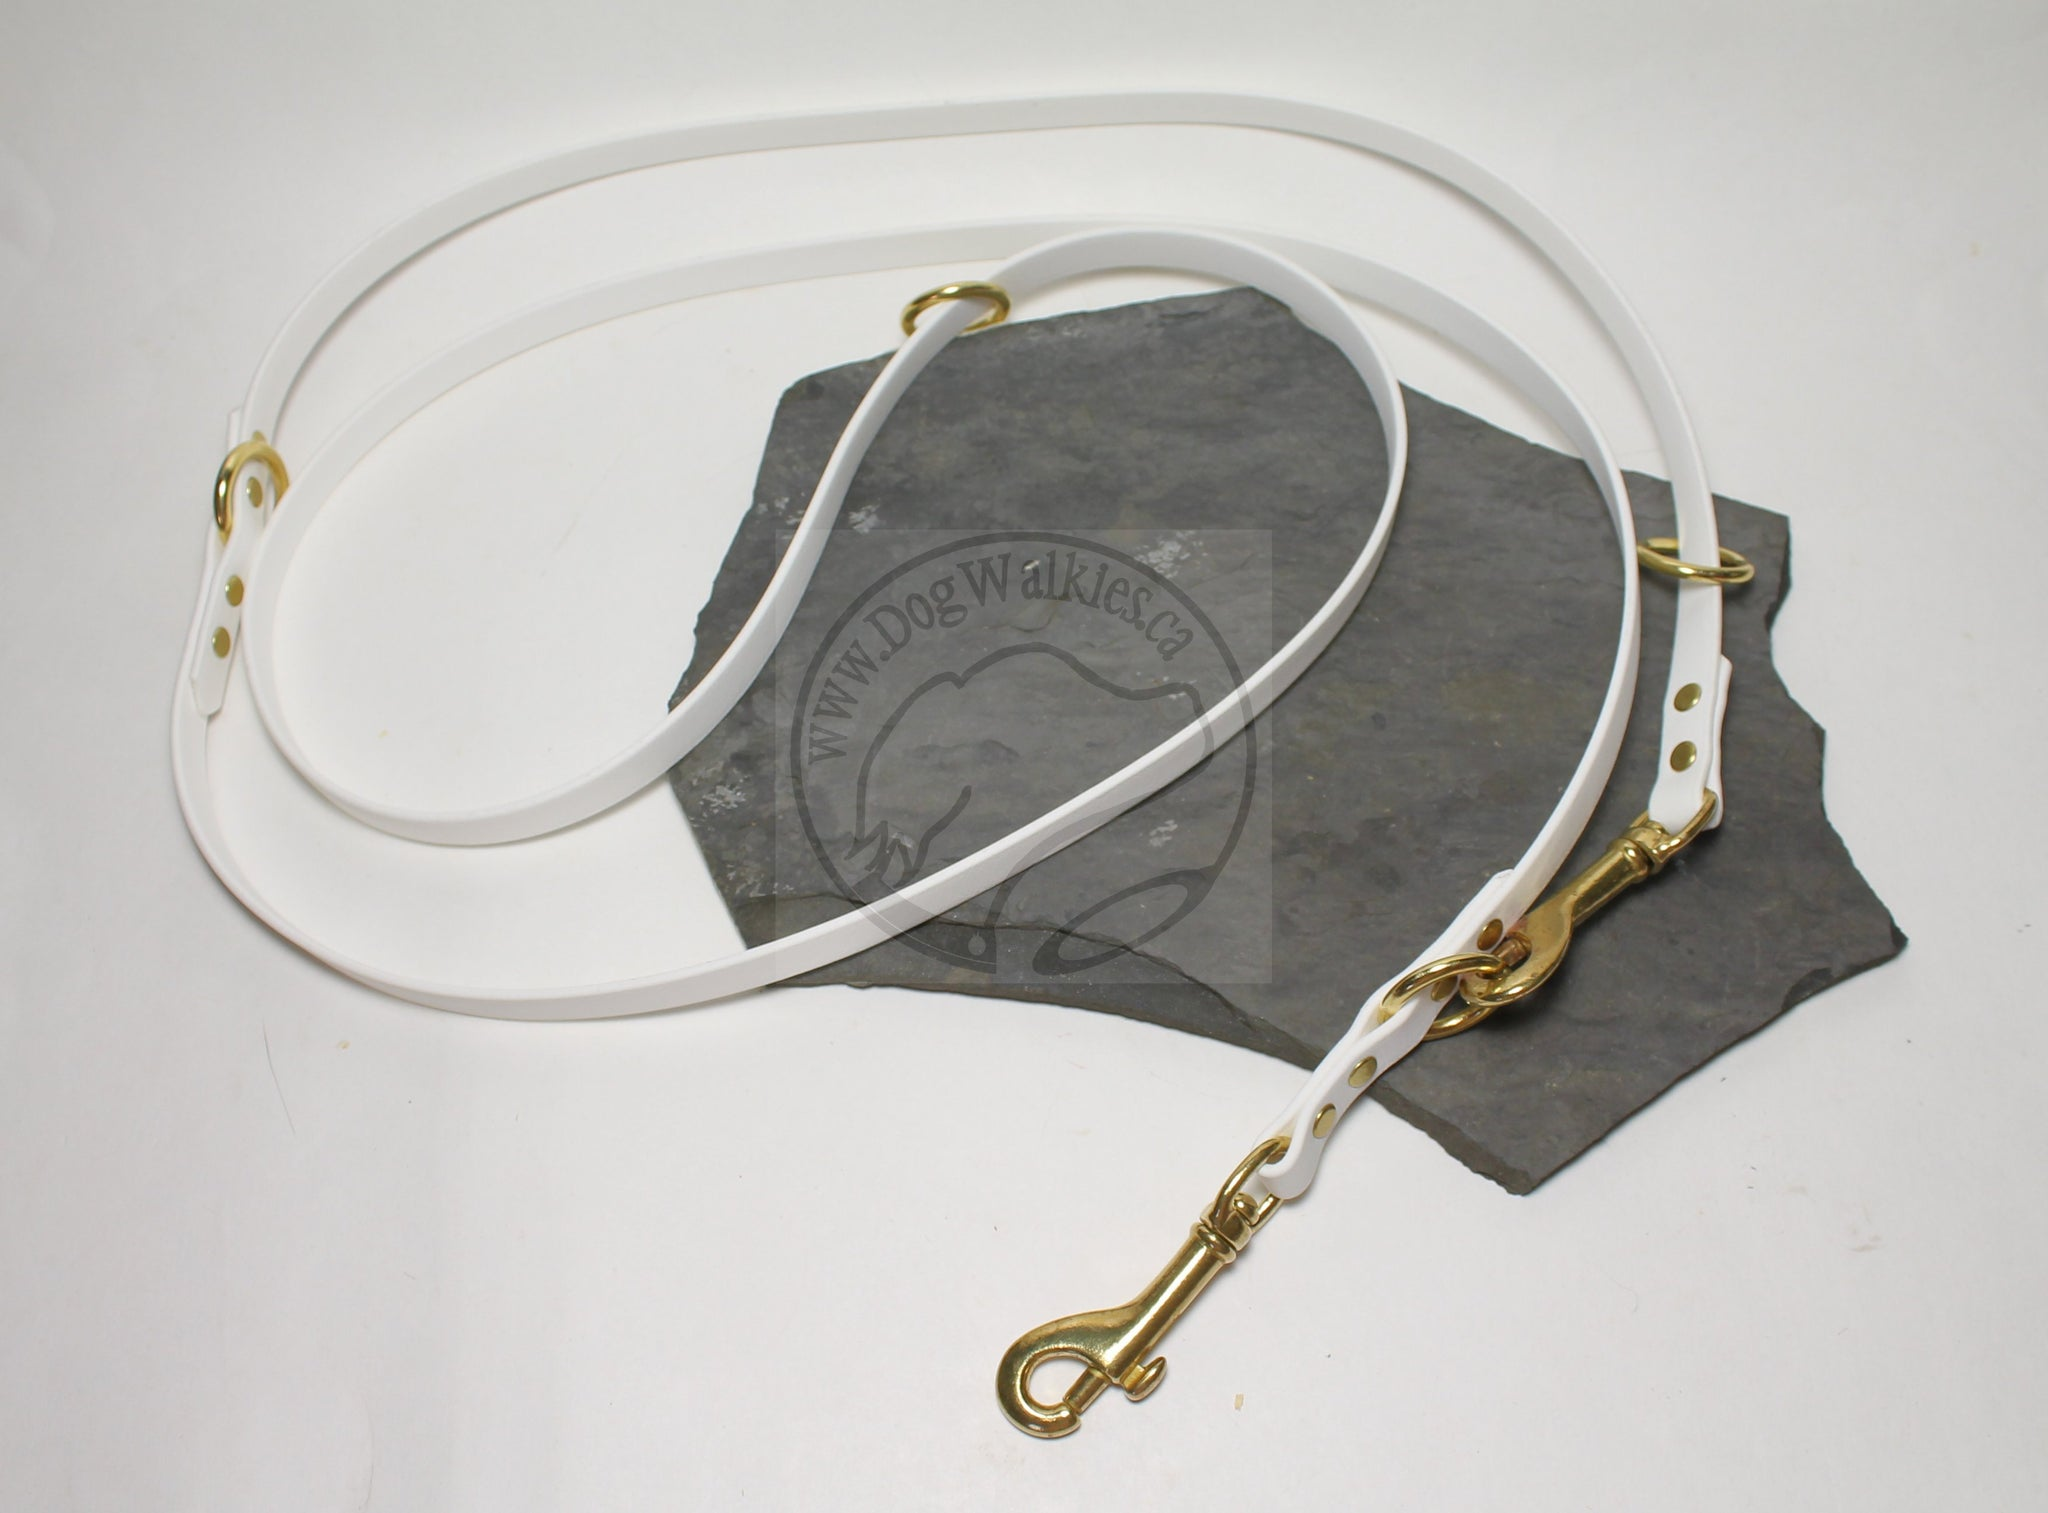 "Convertible Waterproof Leash in Genuine Biothane - Solid Brass Hardware - 12mm (1/2"") width"